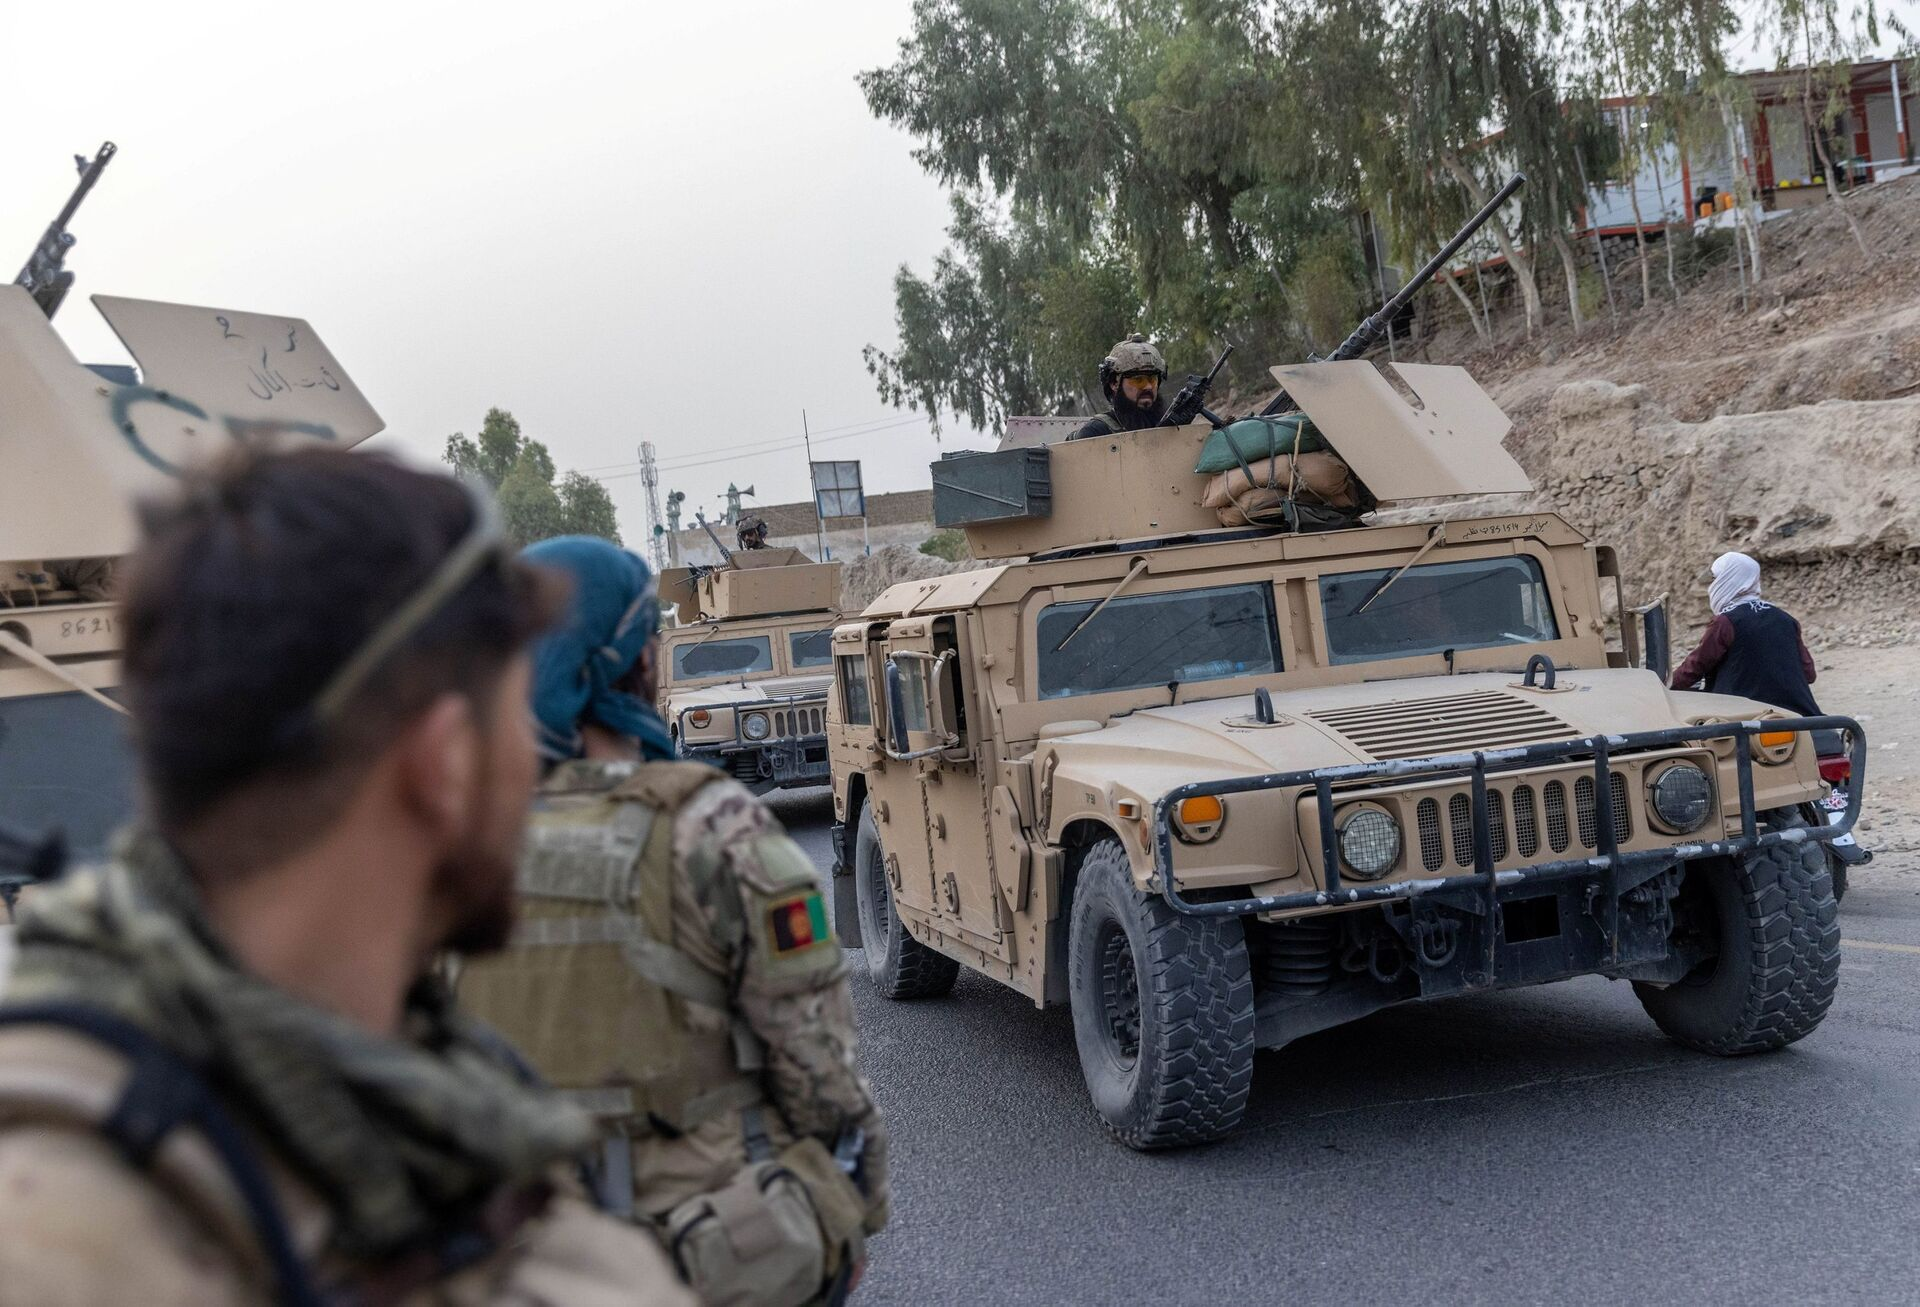 A convoy of Afghan Special Forces is seen during the rescue mission of a police officer besieged at a check post surrounded by Taliban, in Kandahar province, Afghanistan, July 13, 2021. REUTERS/Danish Siddiqui - Sputnik International, 1920, 07.09.2021